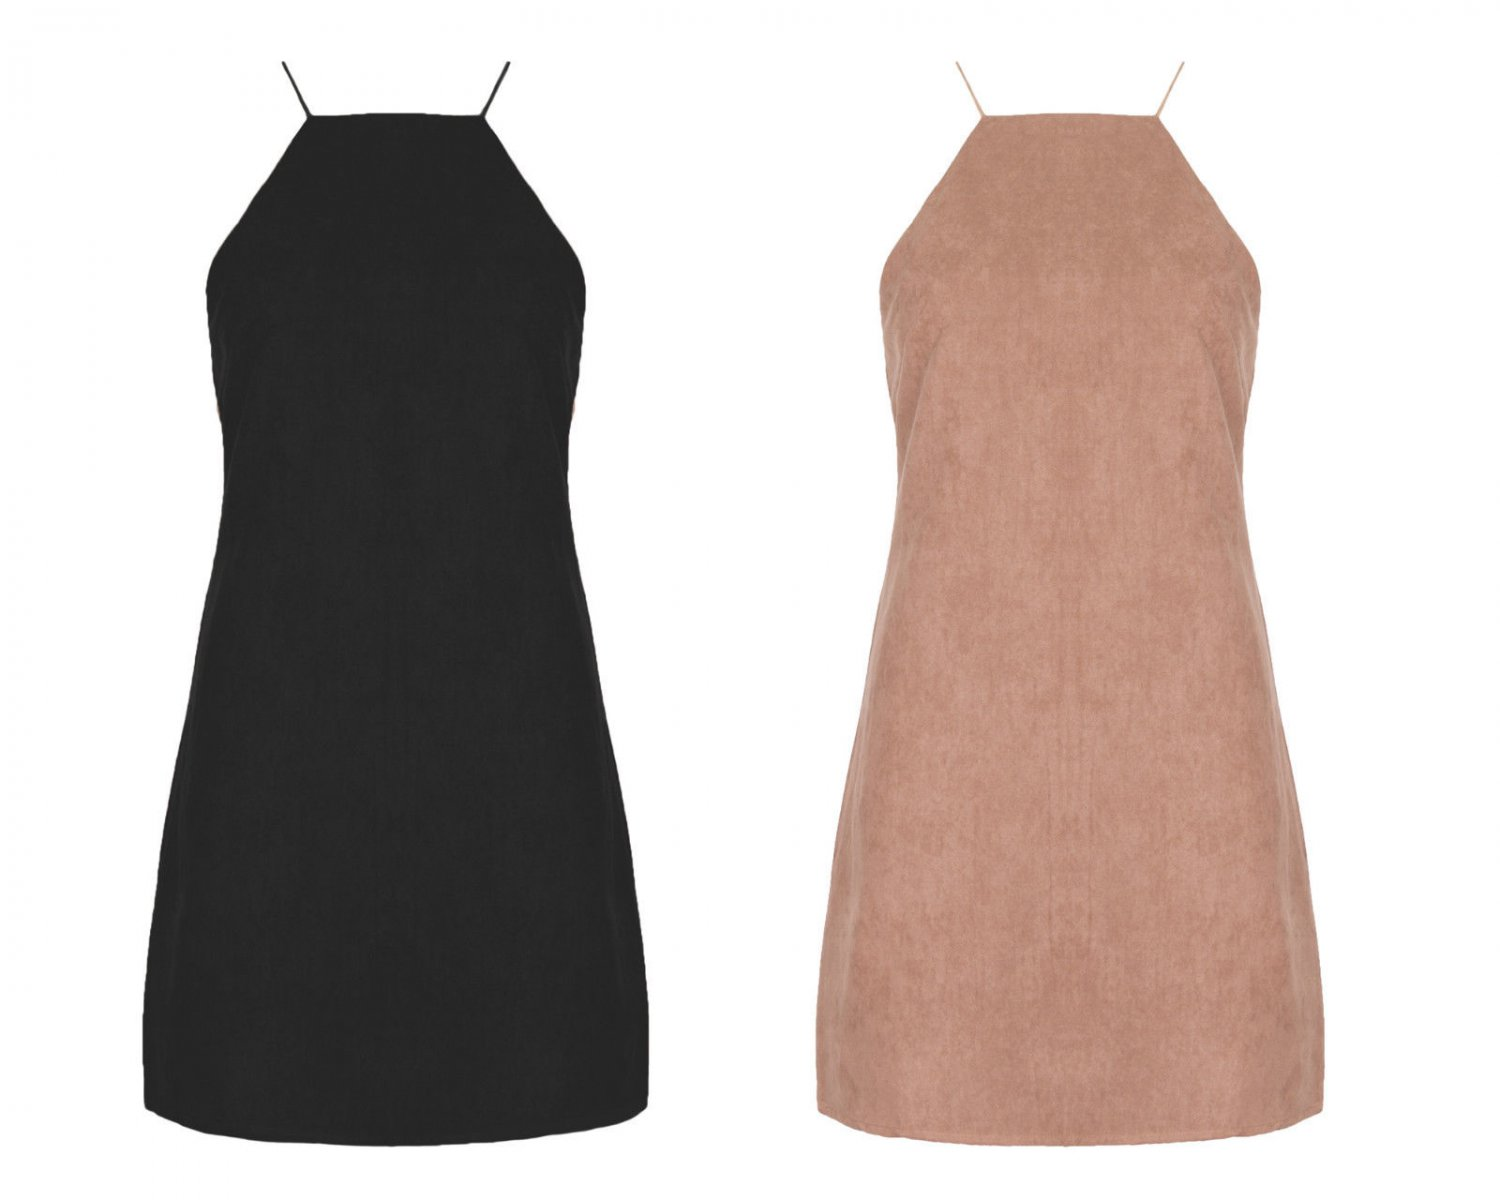 New Women Suede Mini Sexy Dress Rouleaux Straps Tunic Pinafore A Line UK Size 12 Black